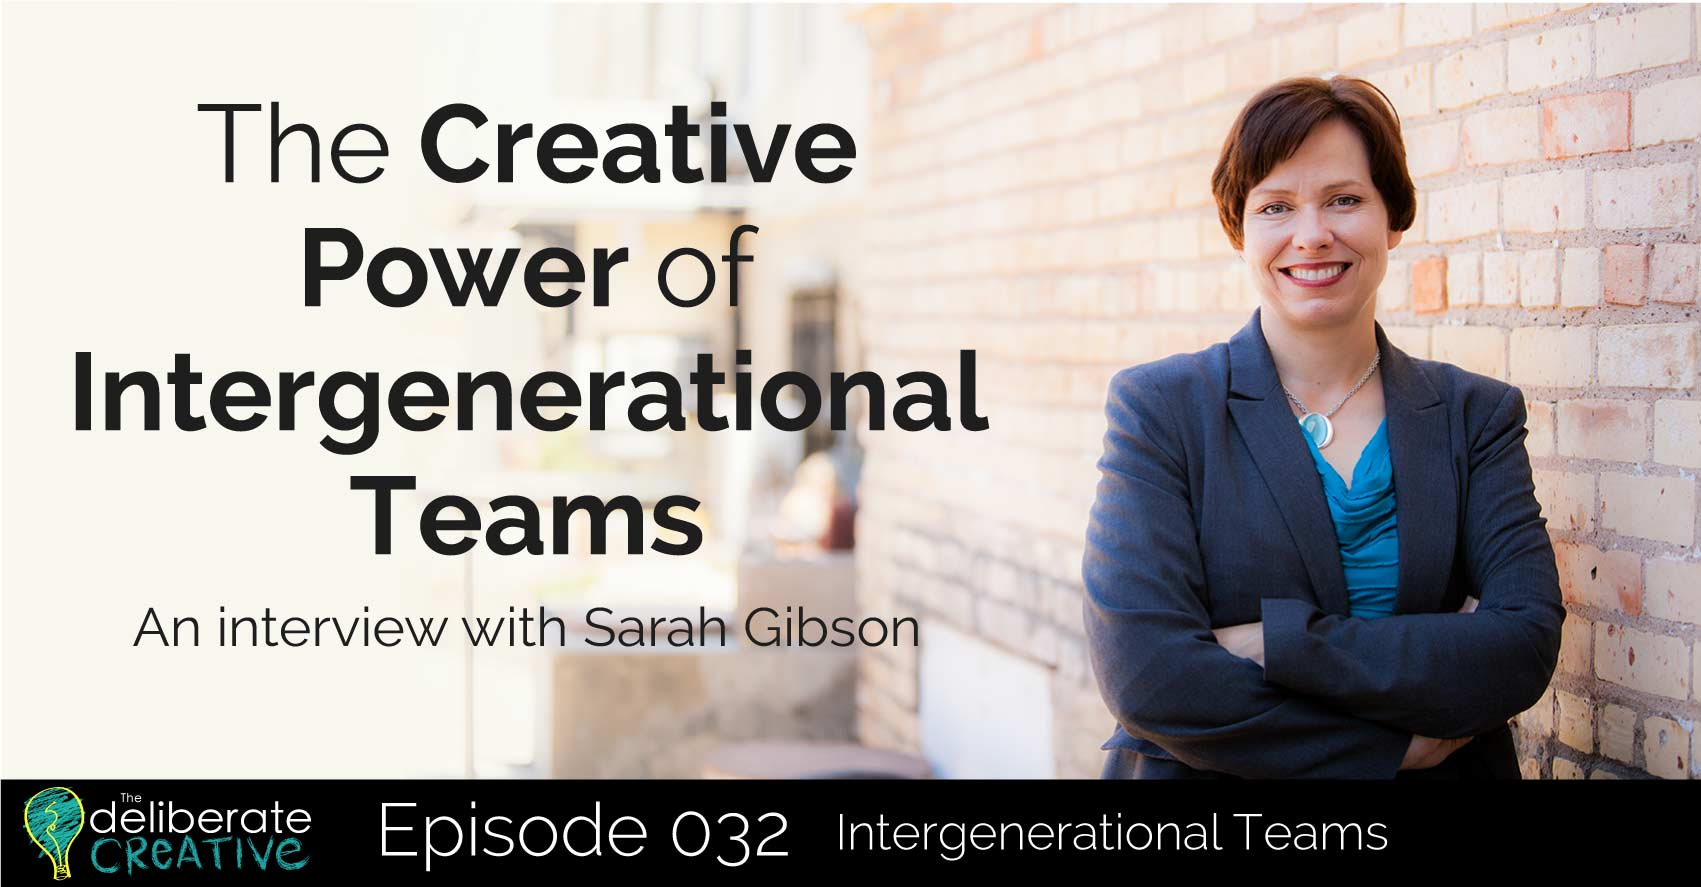 The Deliberate Creative Podcast Episode 32: The Creative Power of Intergenerational Teams